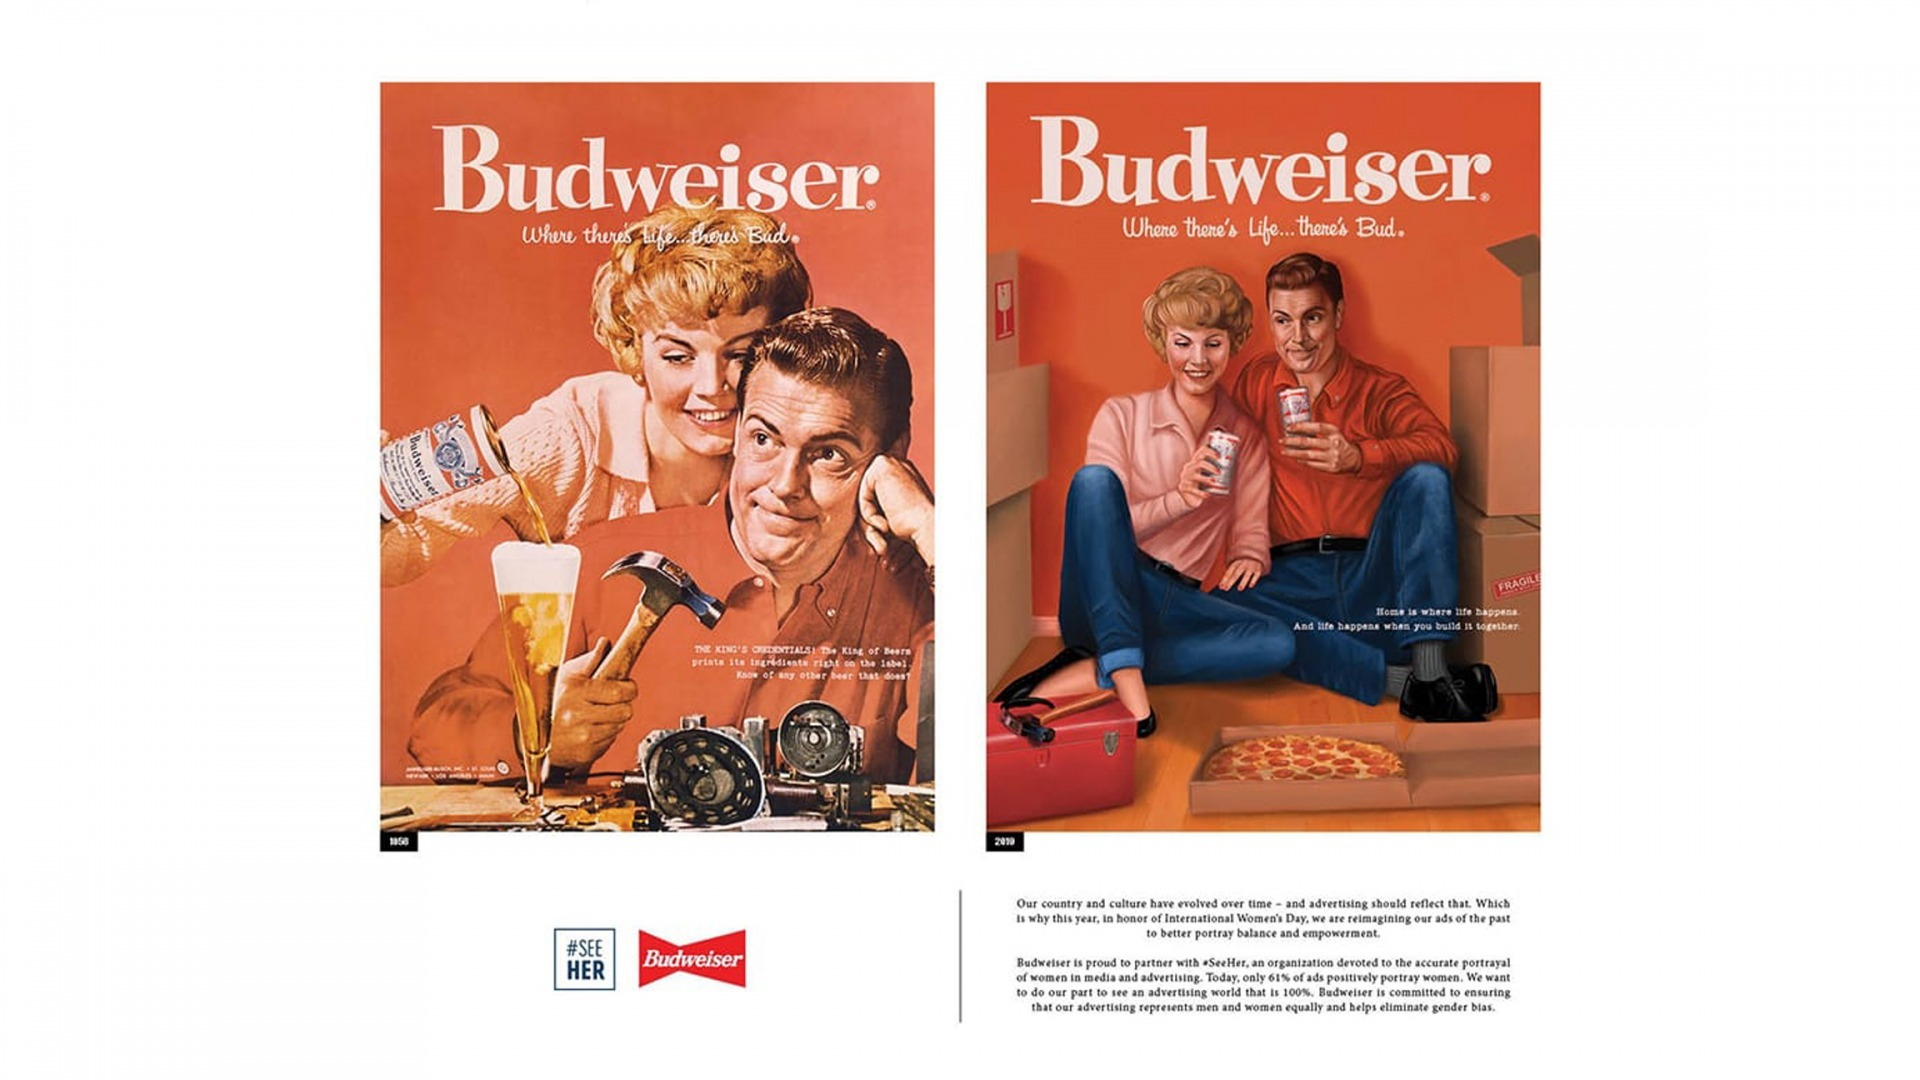 A vintage Budweiser advertisement that has been updated for a 2019 ad campaign.